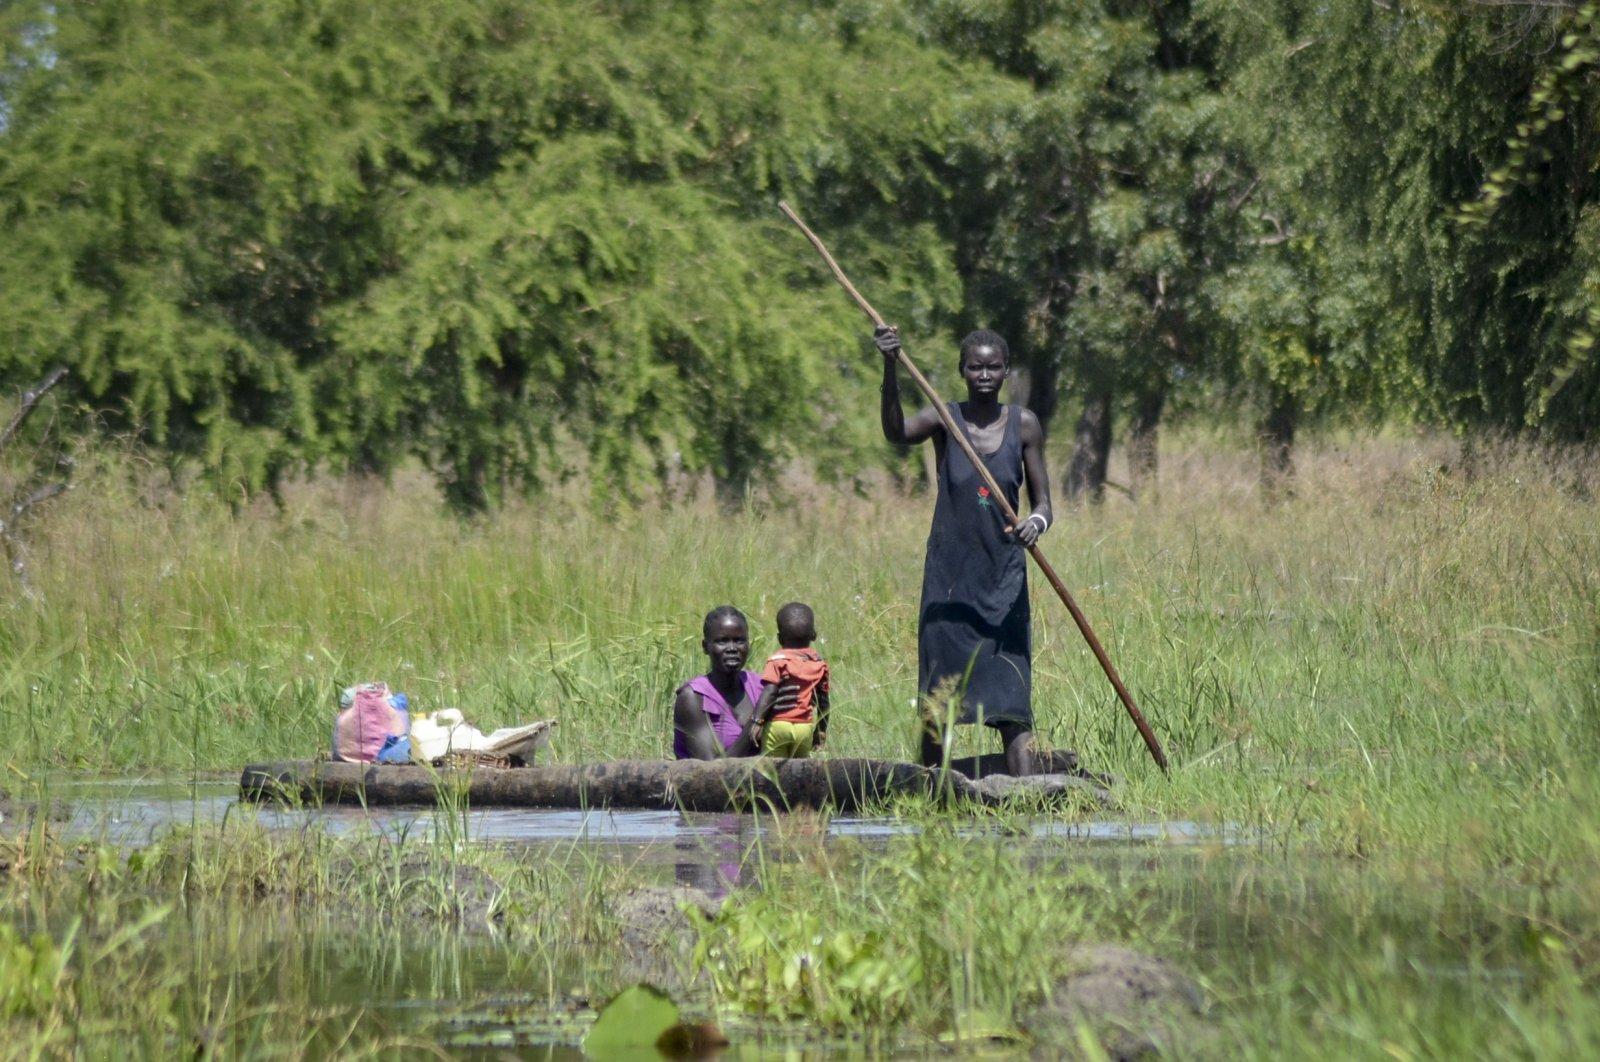 A mother holds her baby as she is transported by dugout canoe through floodwaters in the village of Wang Chot, Old Fangak county, Jonglei state, South Sudan, Nov. 26, 2020. (AP Photo)